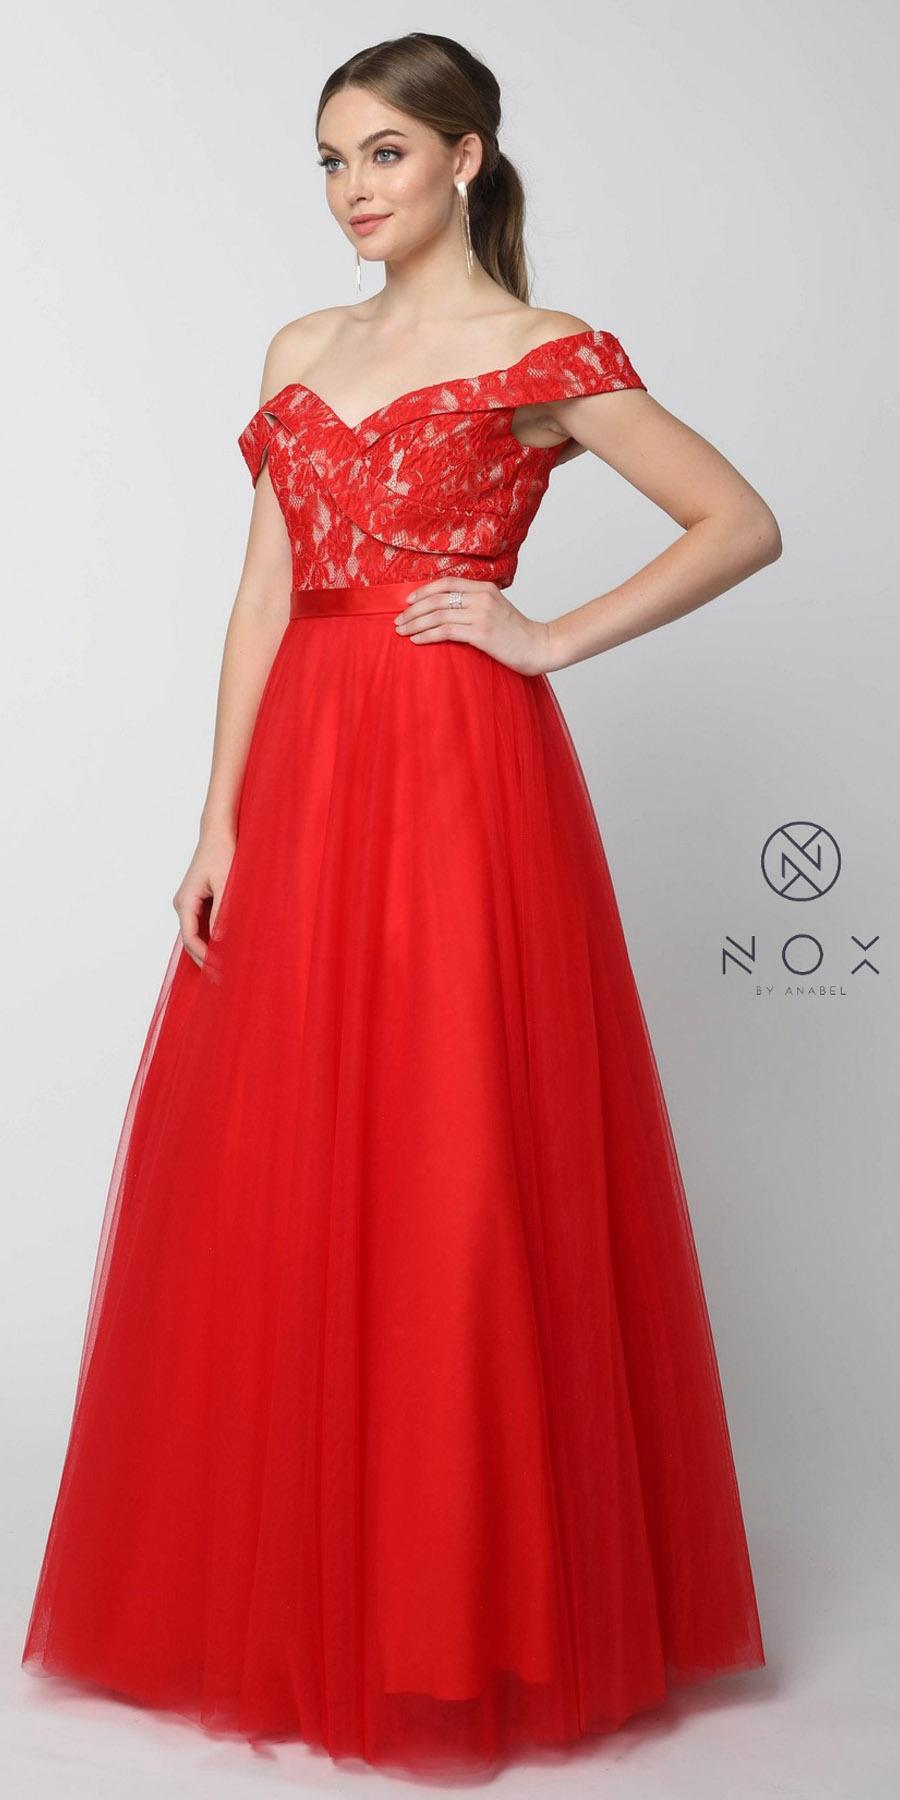 260f8fc94f61 Nox Anabel 8372 Red Off-Shoulder Lace Bodice A-line Tulle Overlay Ball Gown  ...